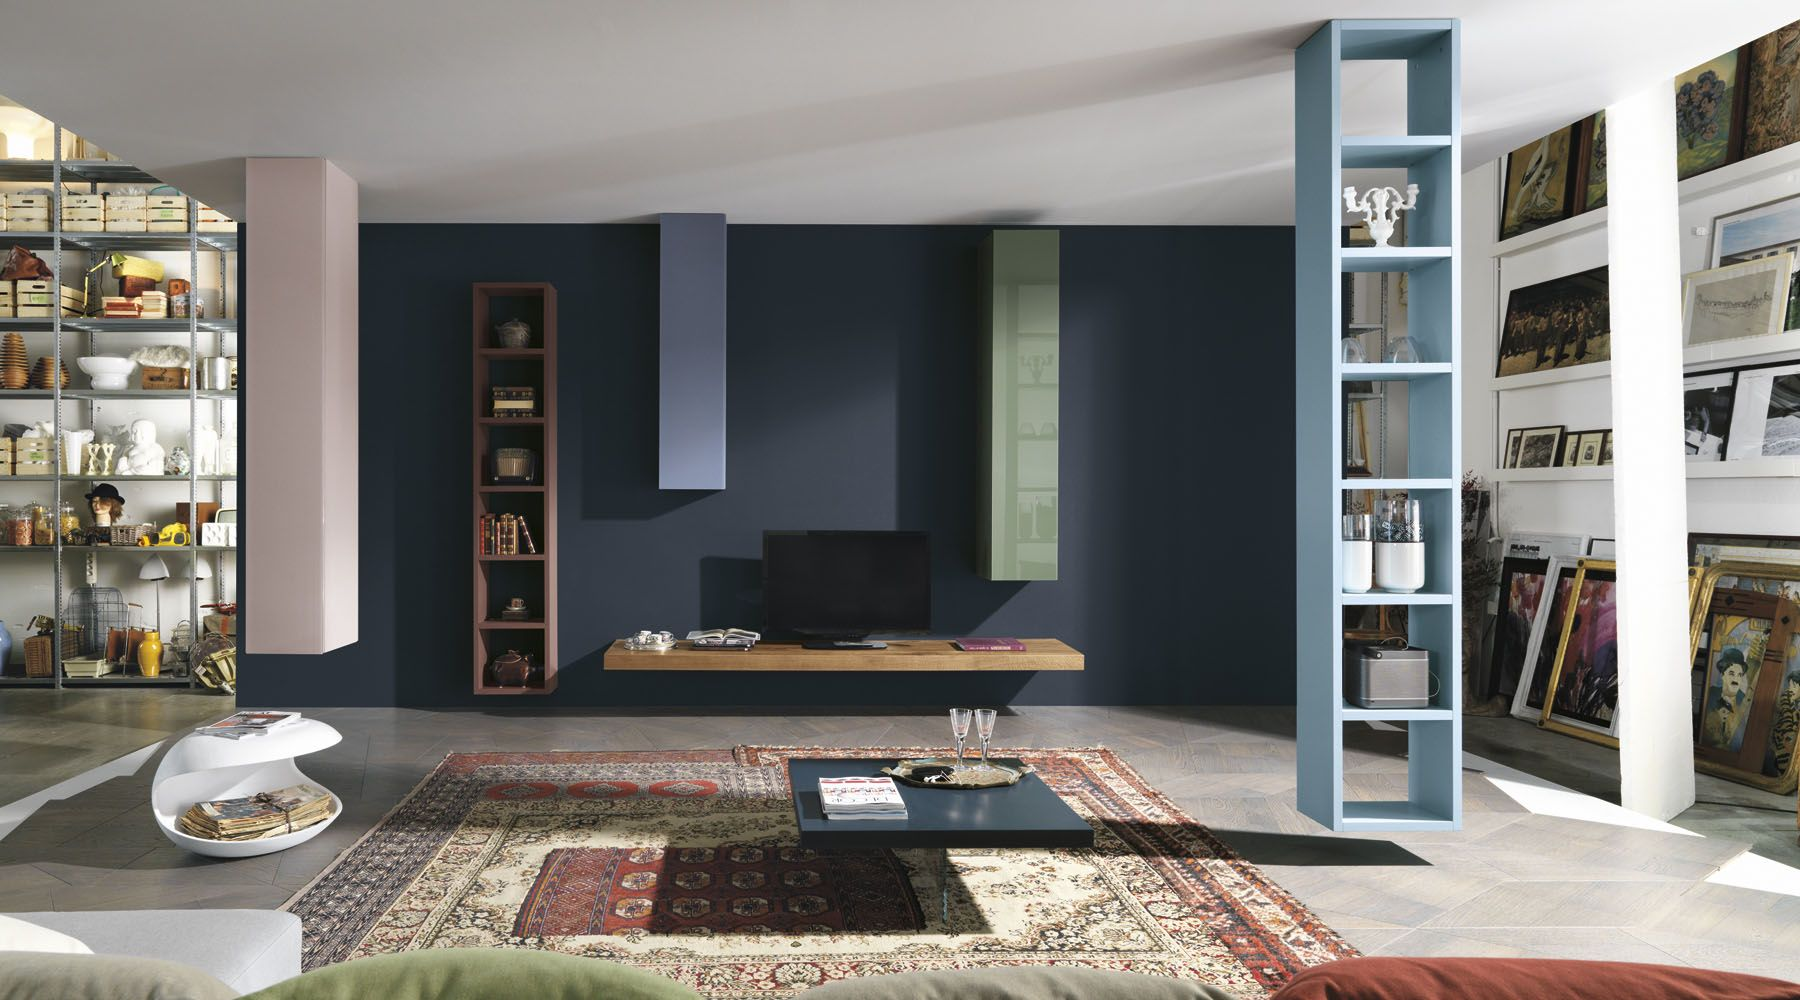 Sistema 36e8 | Living rooms, Room and Bedrooms